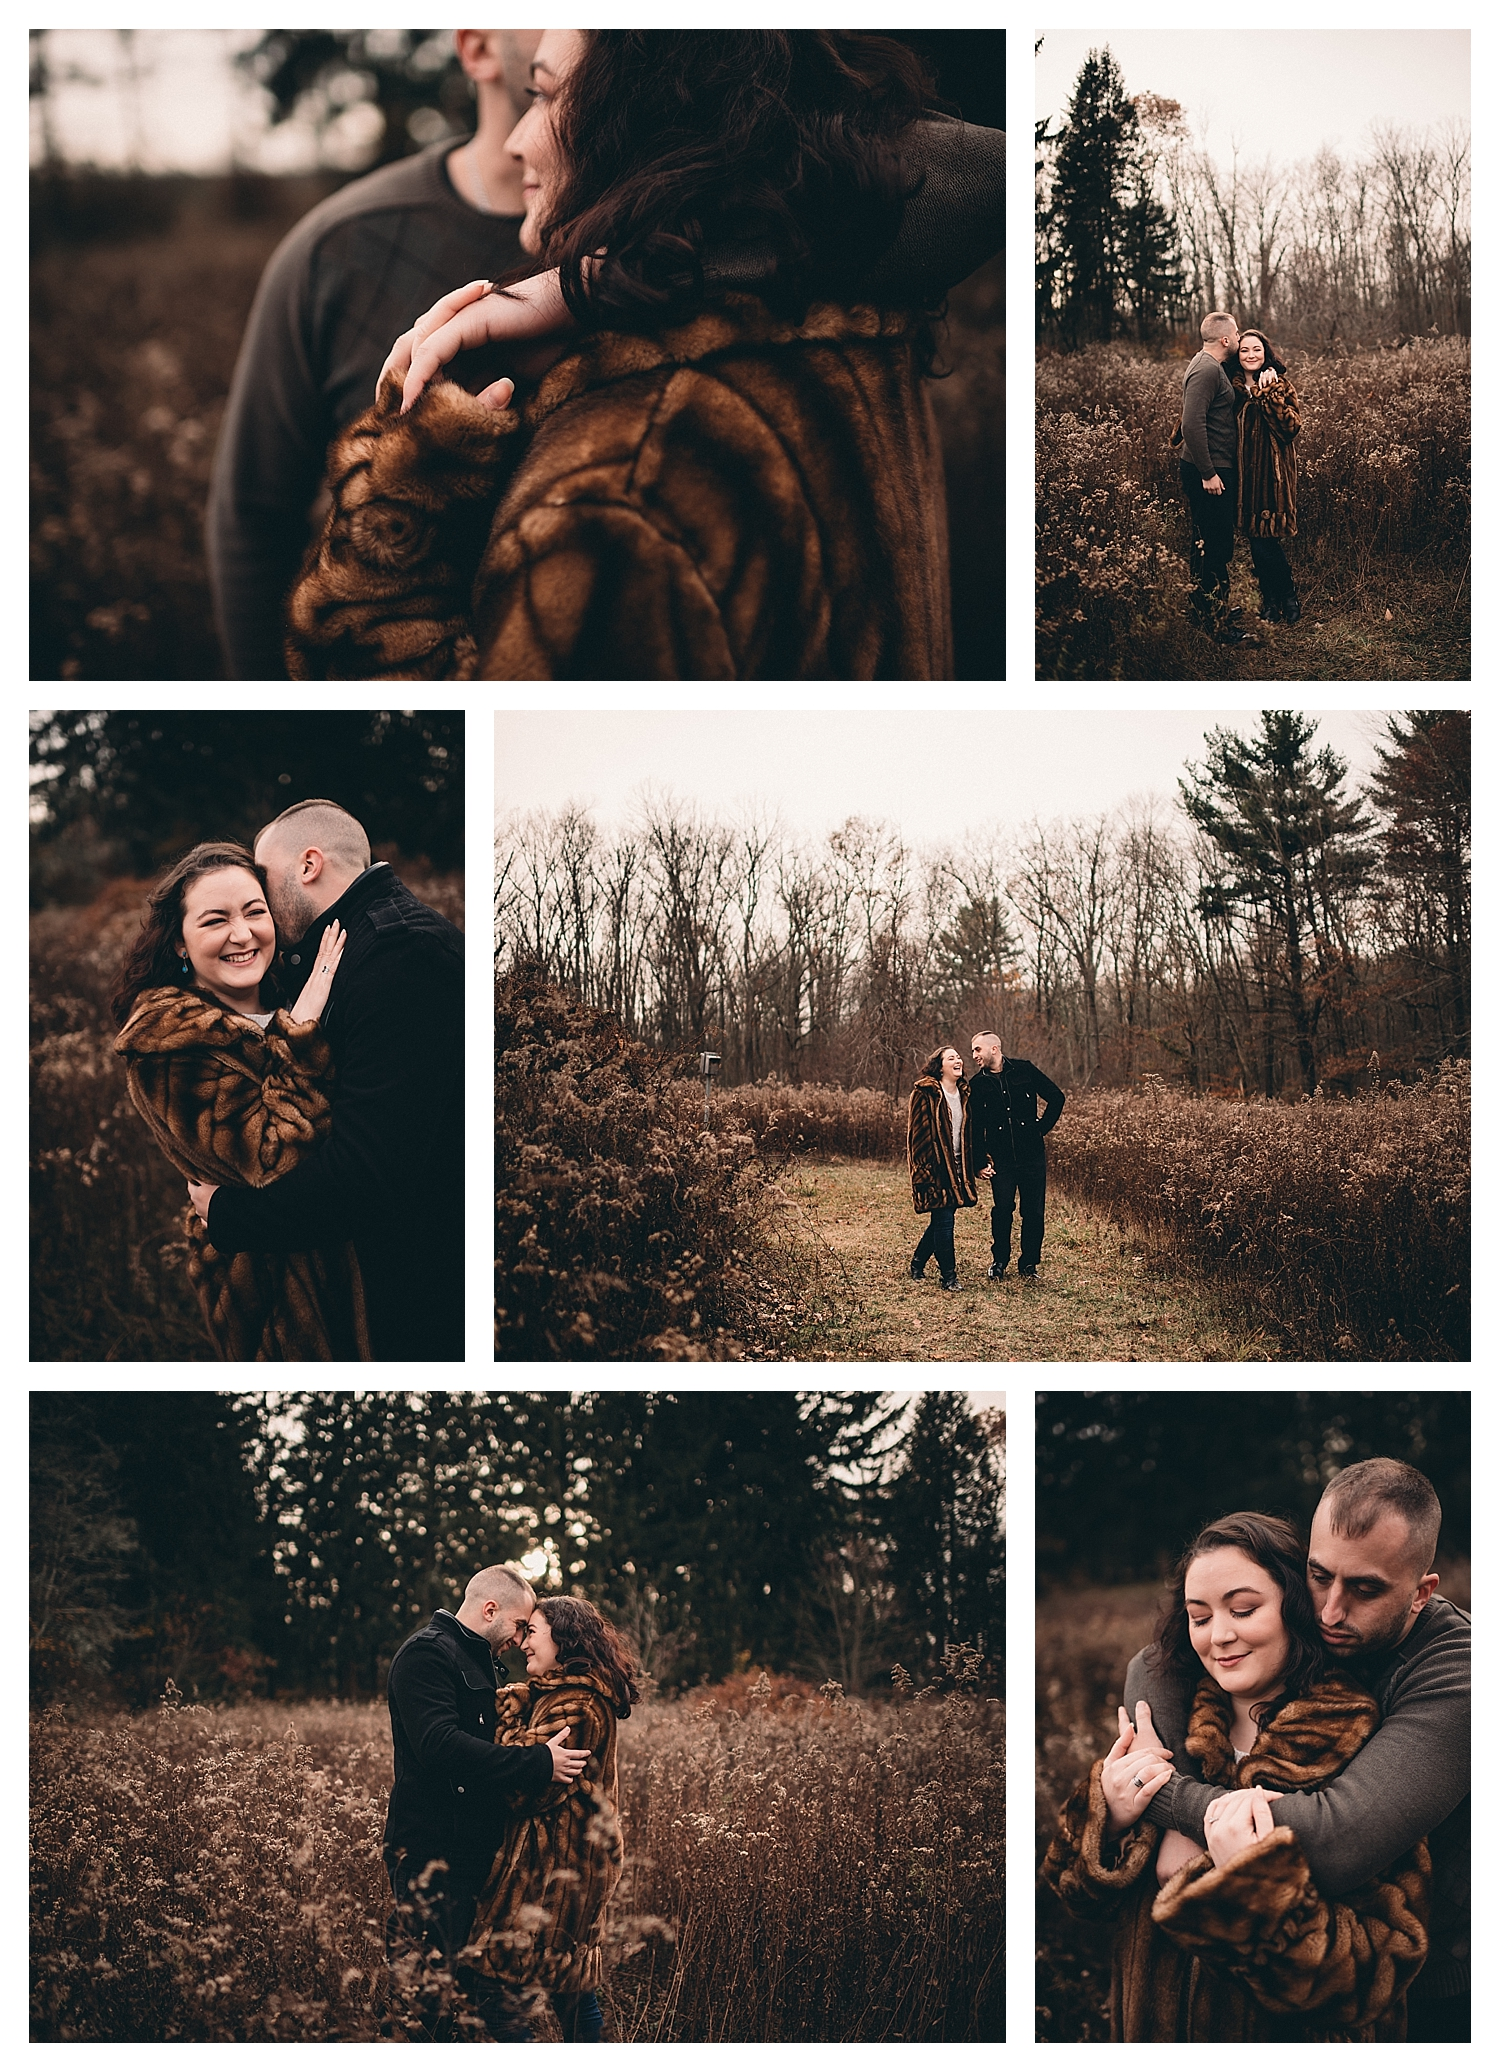 NEPA-Scranton-wedding-engagement-photographer-in-Philadelphia-PA-Central-PA_0310.jpg